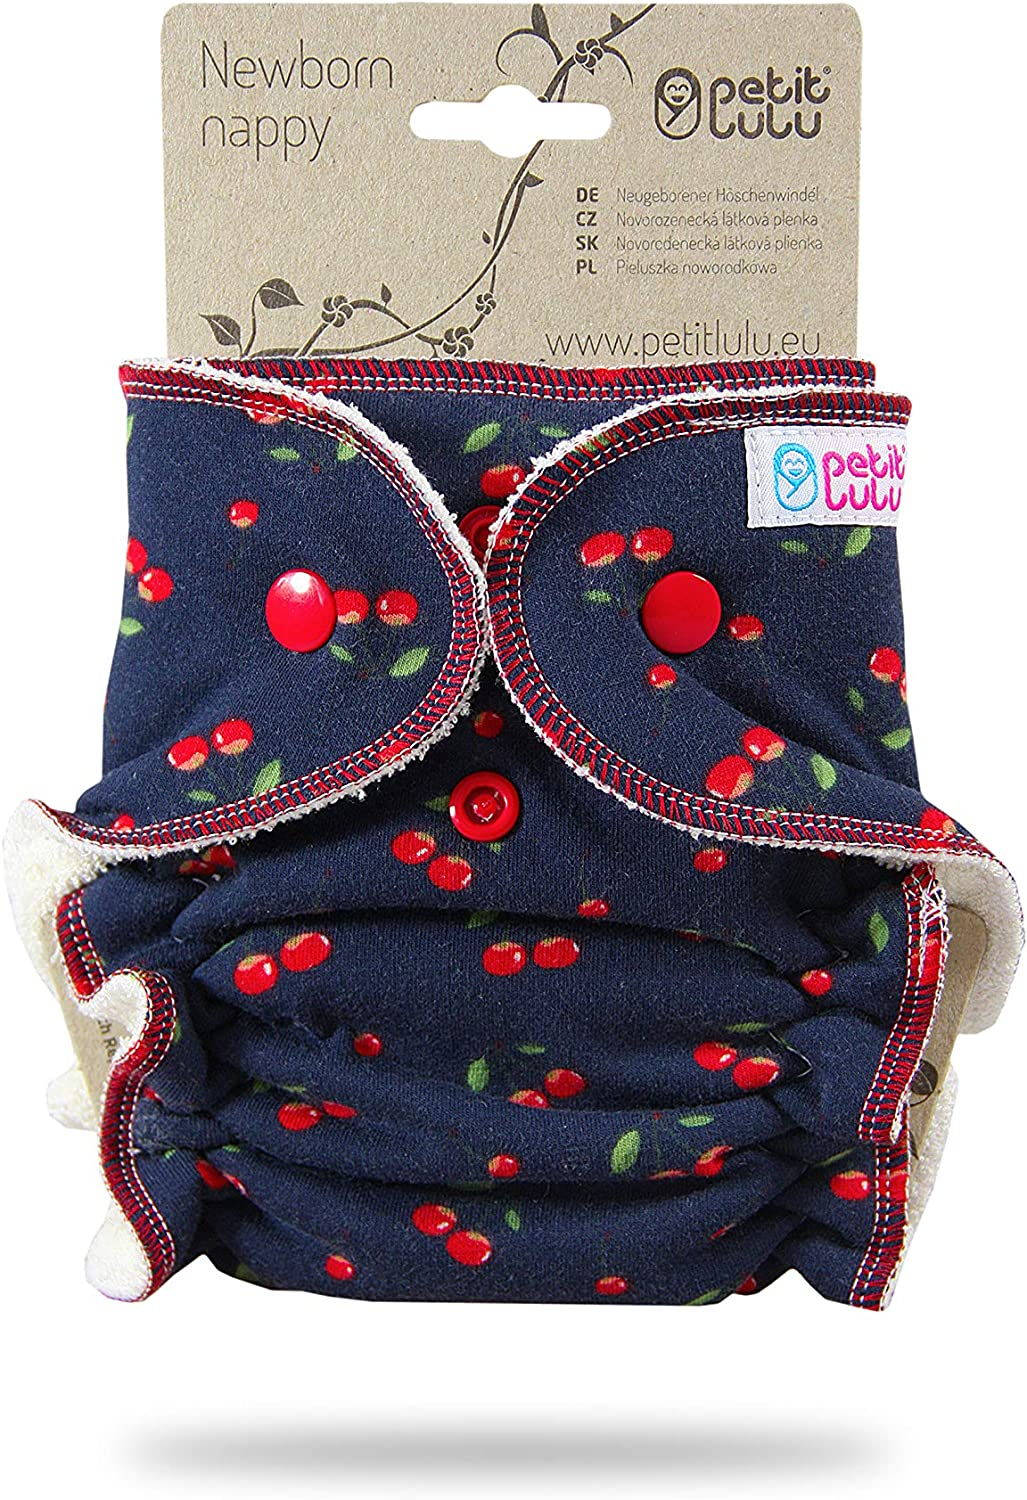 Outer Material 95/% Cotton 5/% Elastane Animals on Trip Snaps Made in Europe Reusable /& Washable Petit Lulu Bamboo Fitted Newborn Diaper